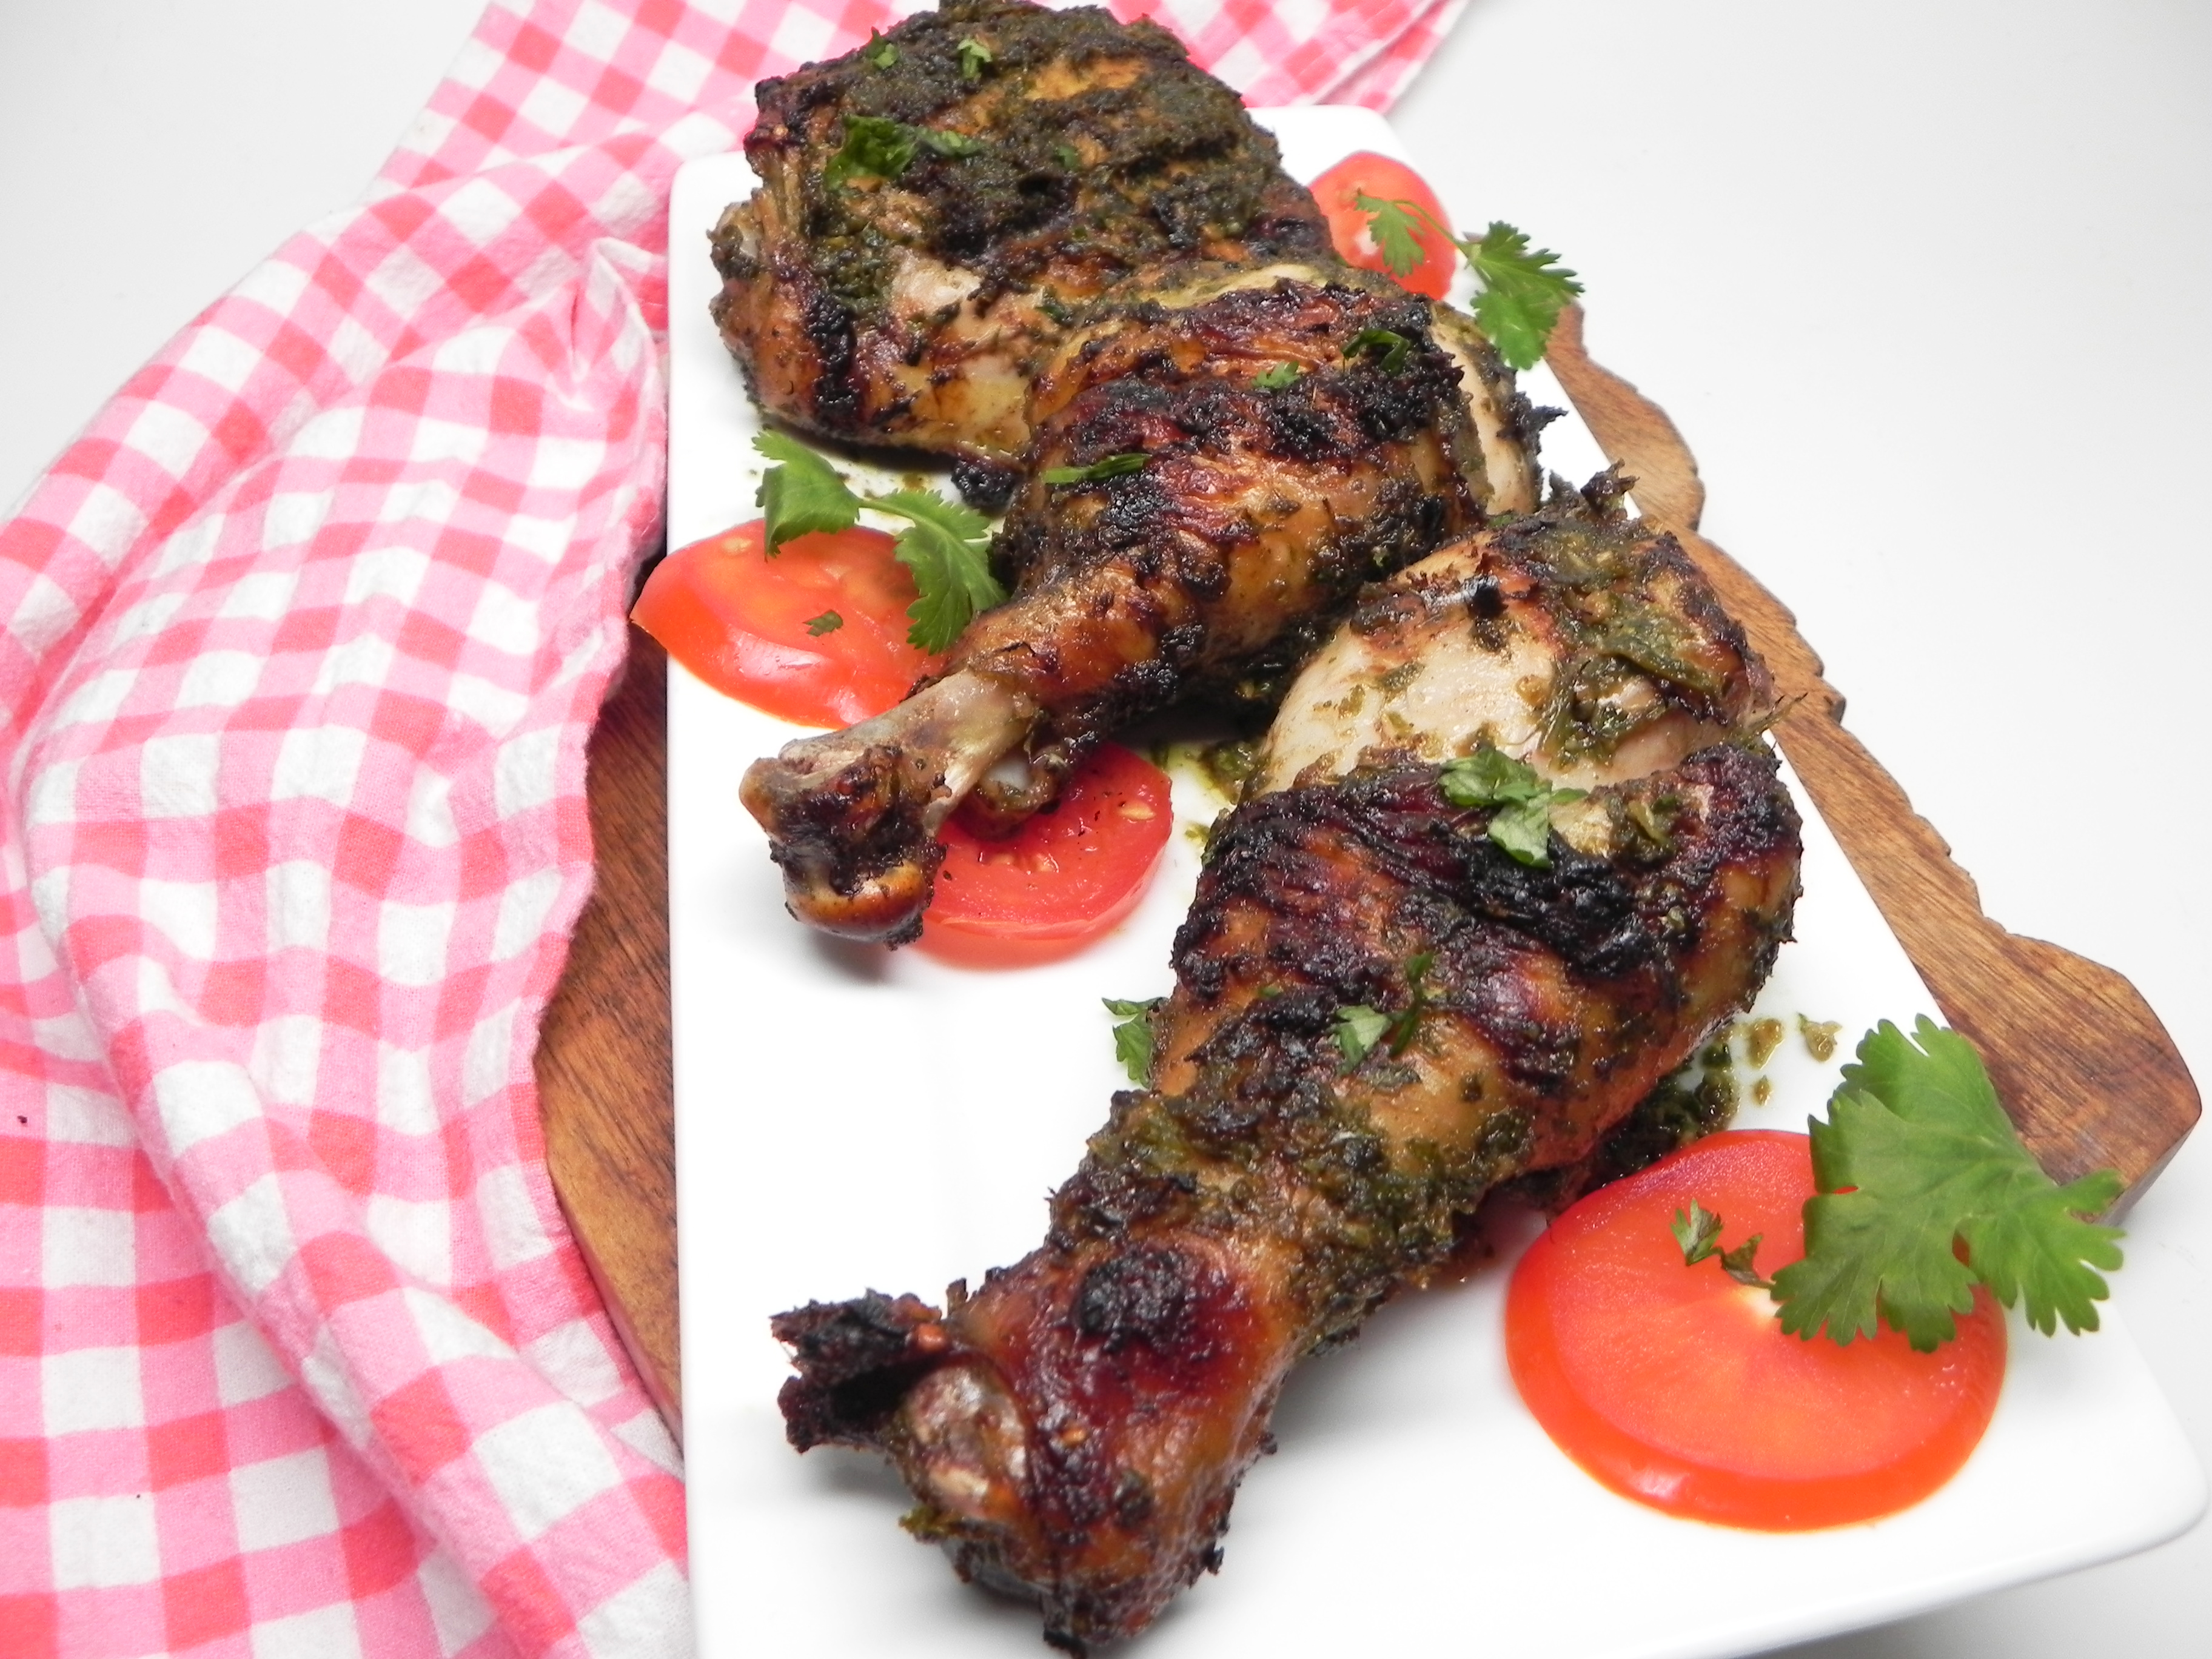 Jalapeno-Cilantro Grilled Chicken